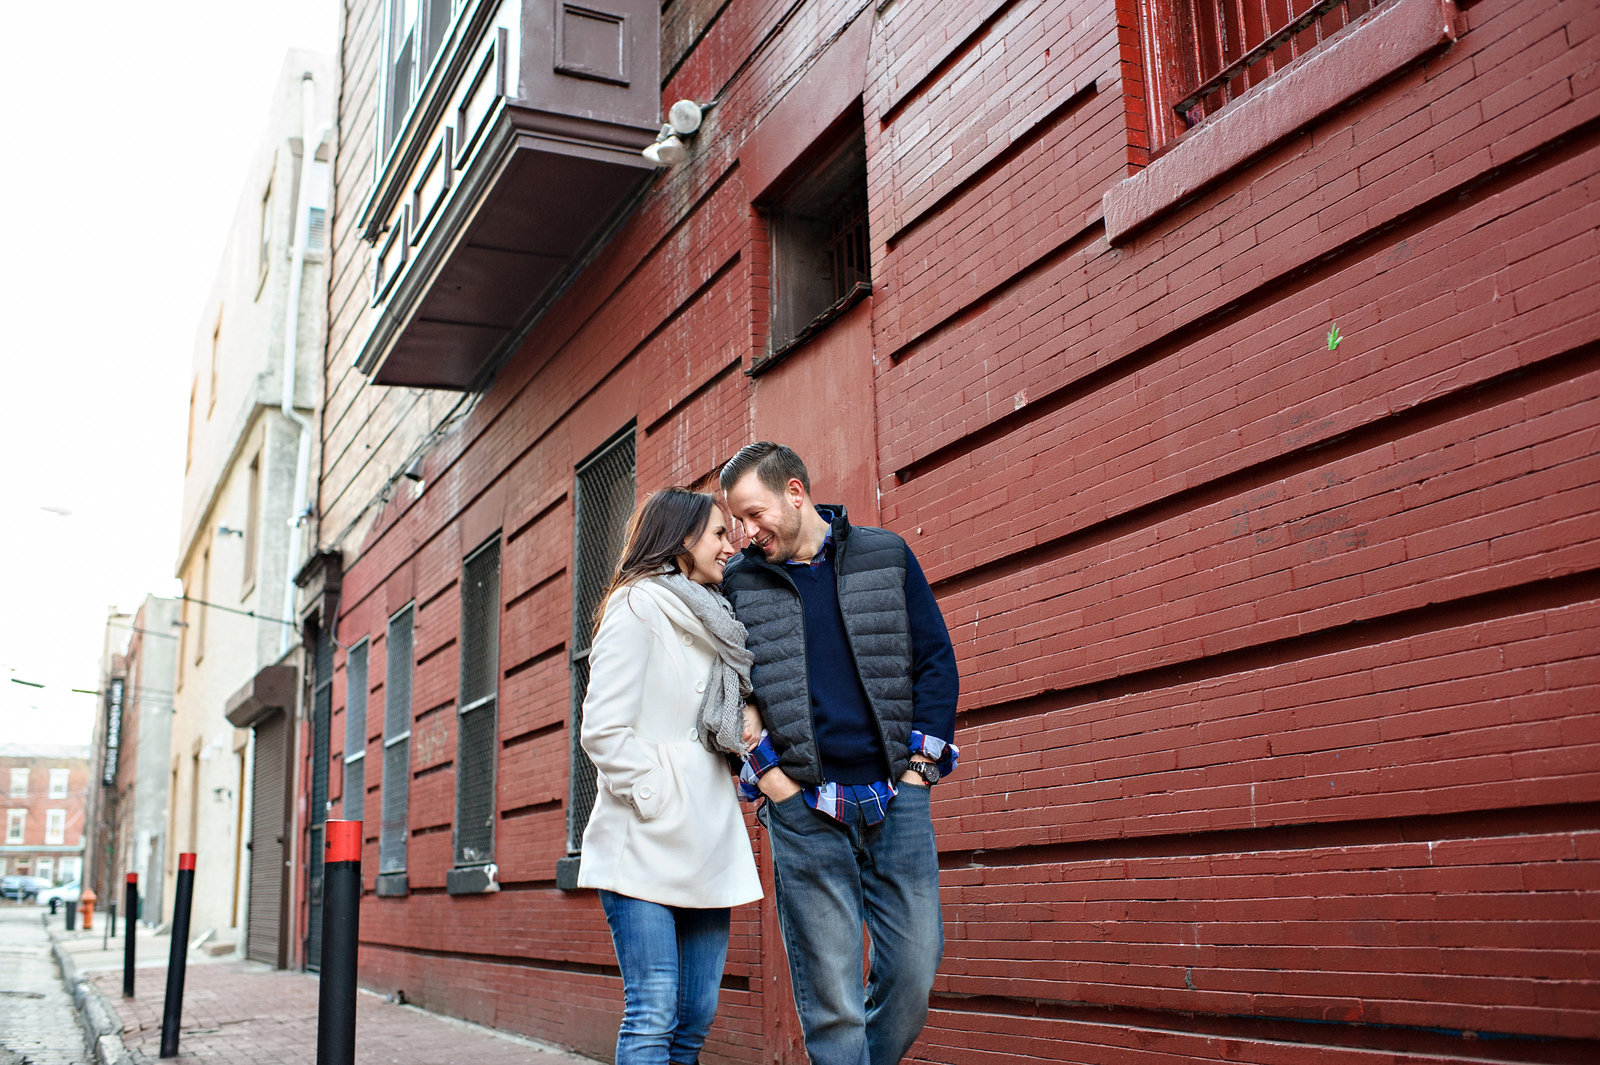 A man and his fiance walk the south philly streets while looking into each others eyes.